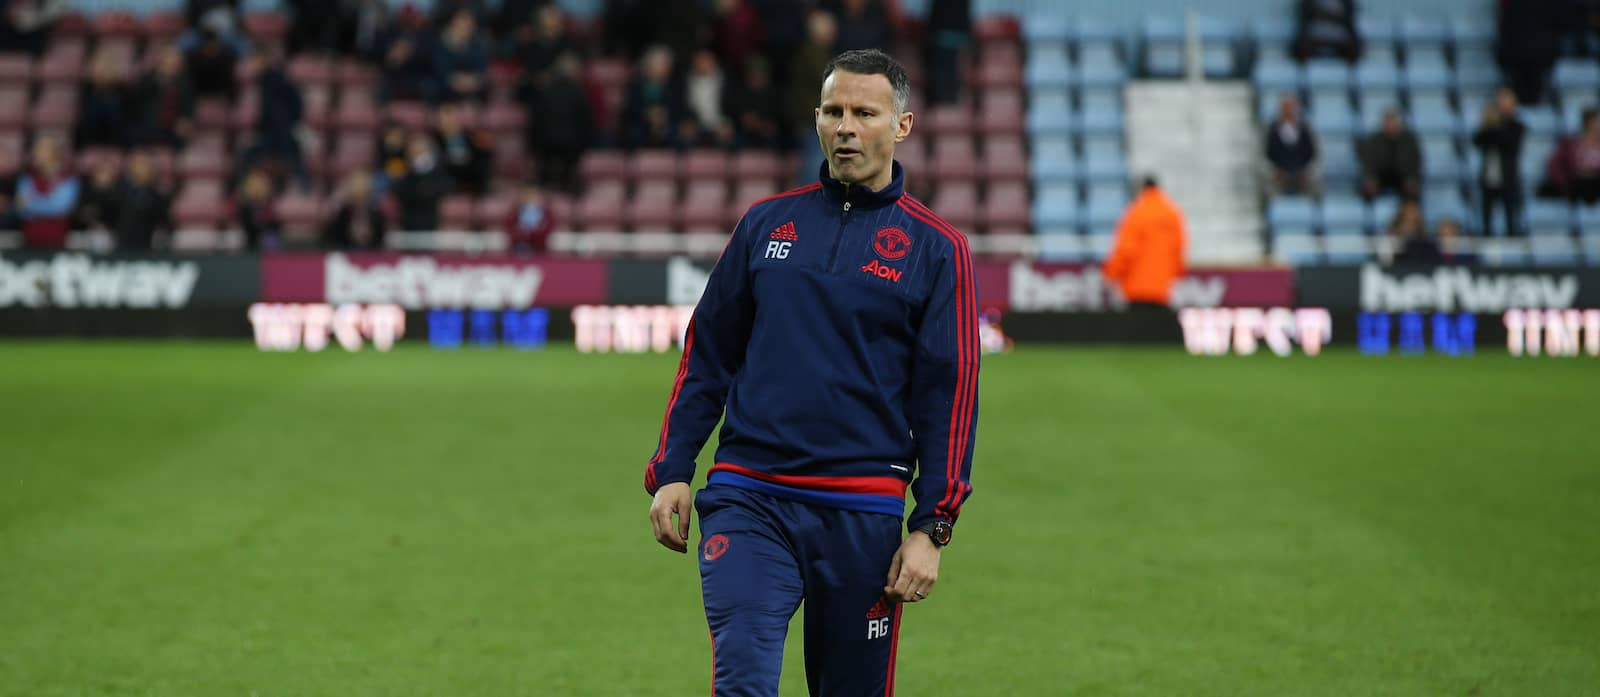 Manchester United's Ryan Giggs set to join ITV as a pundit for Euro 2016